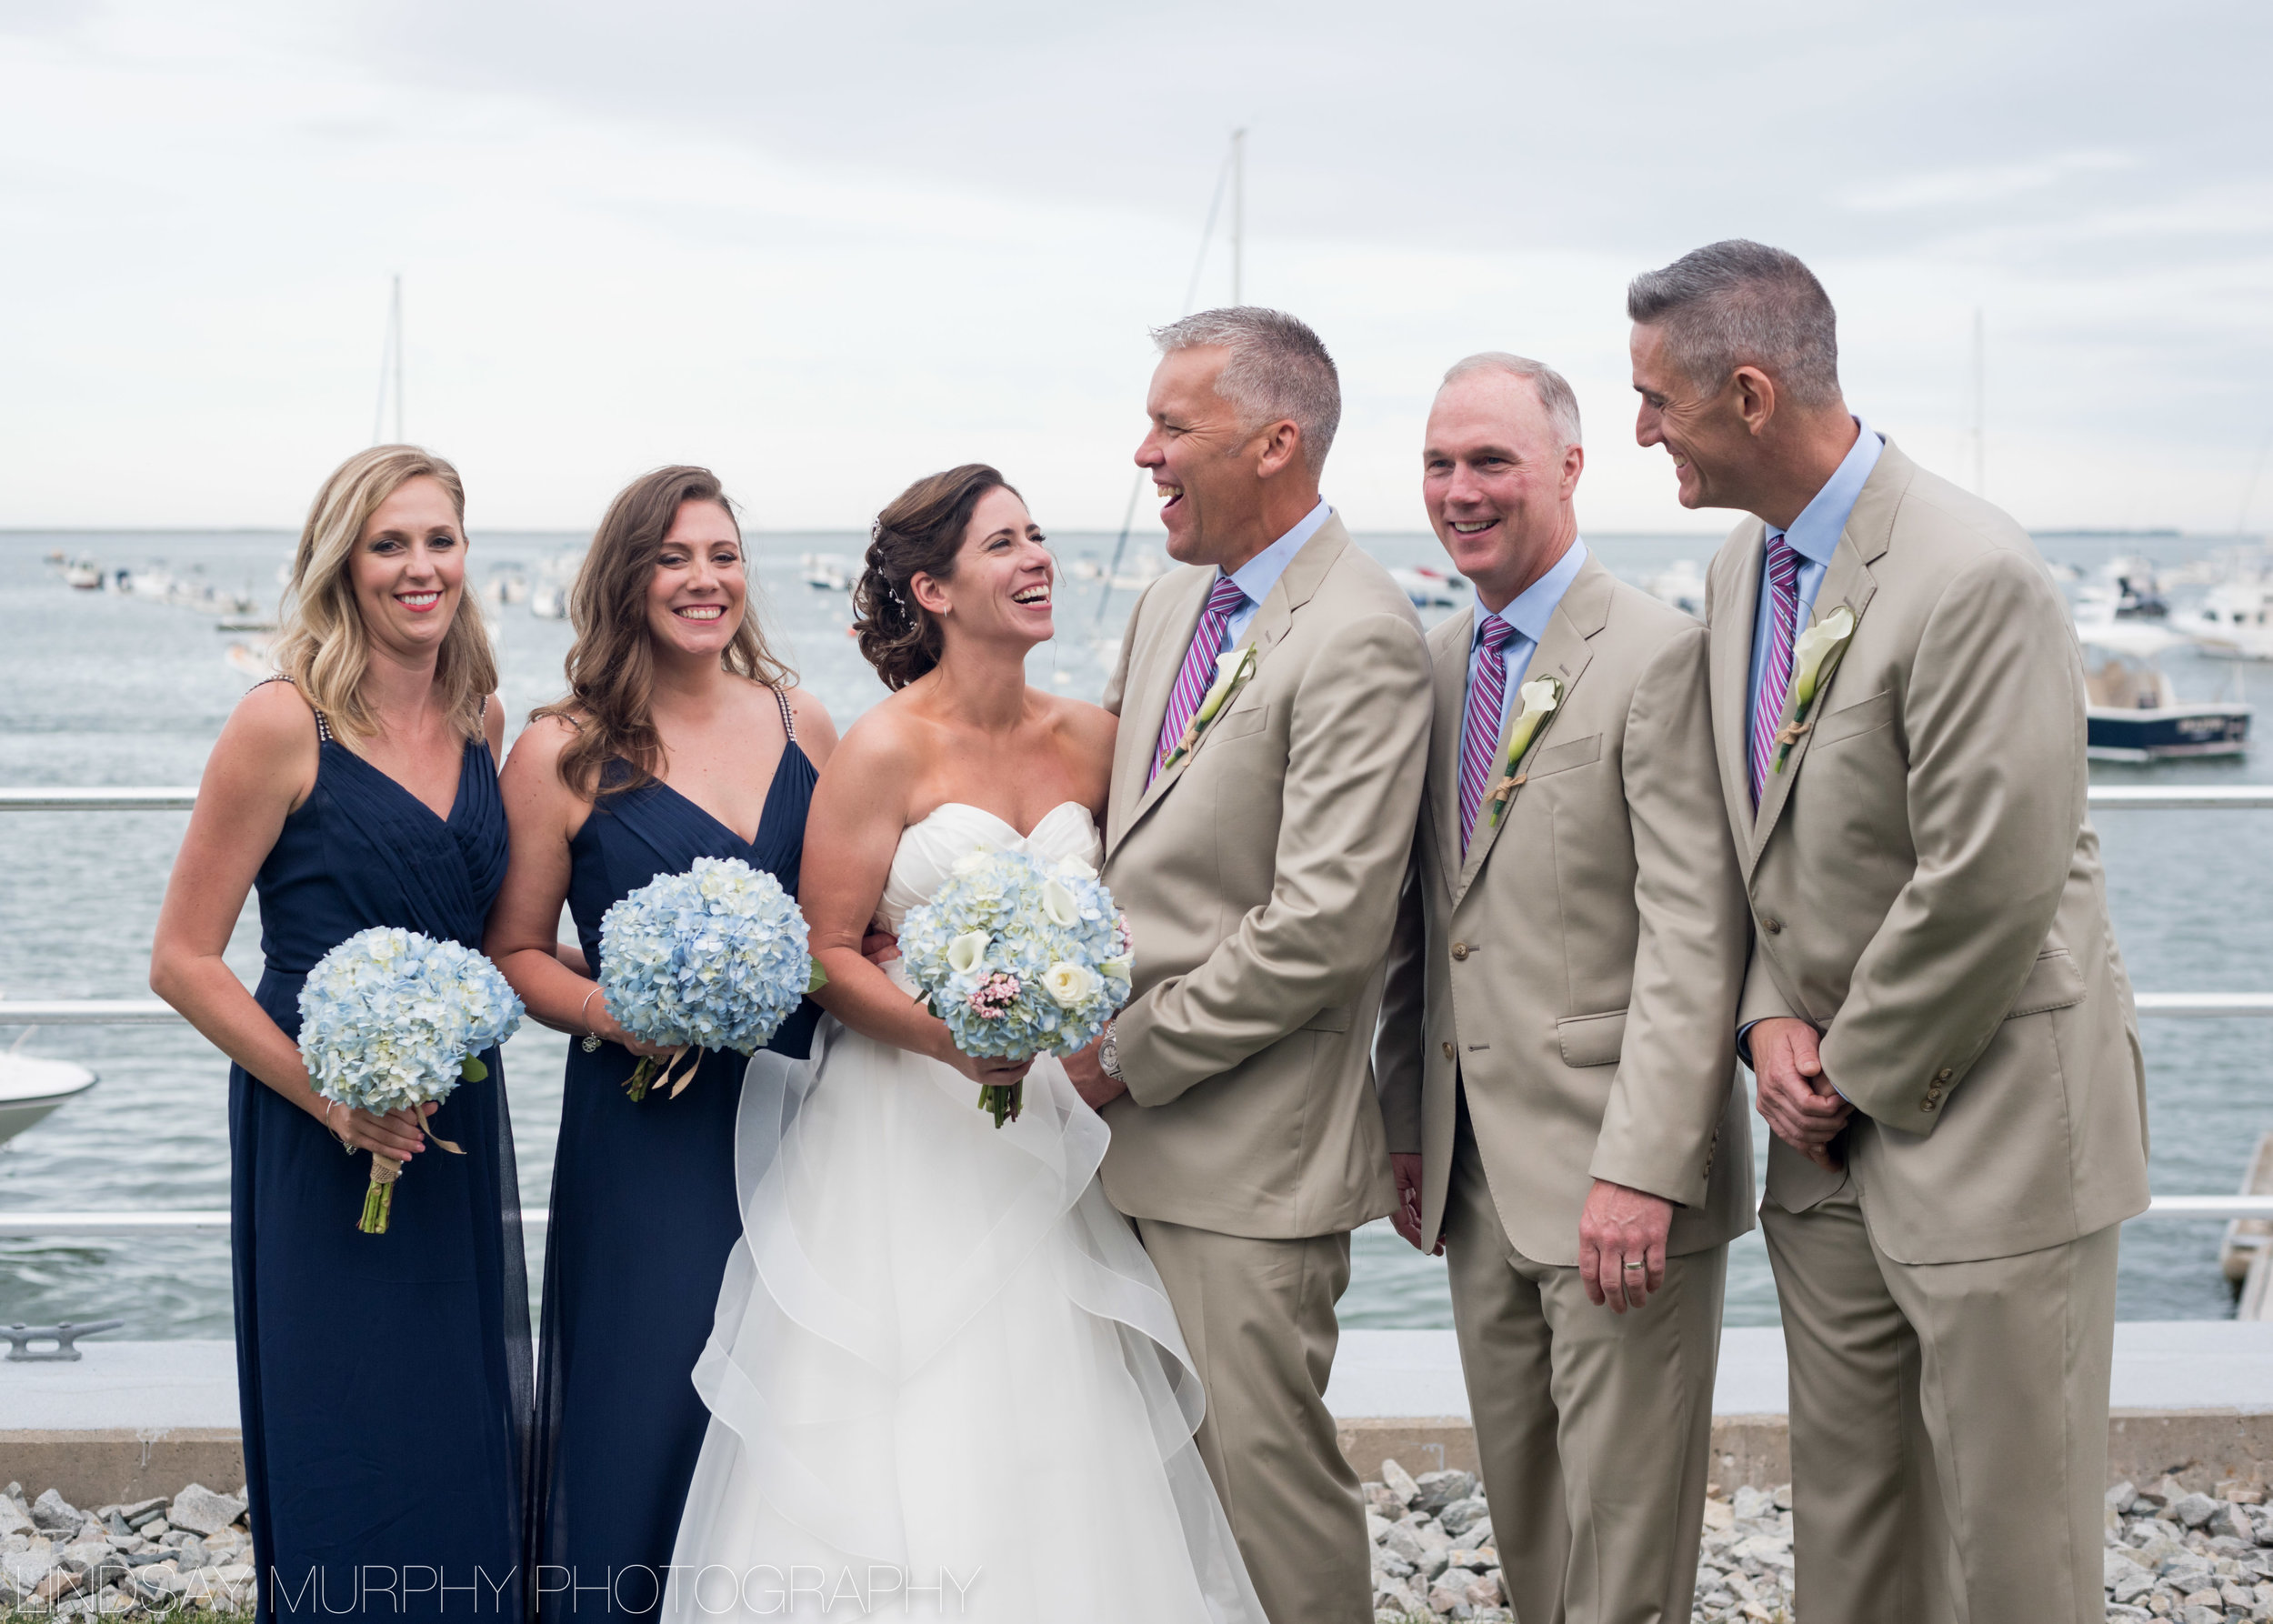 Duxbury_Wedding_Photographer-304.jpg